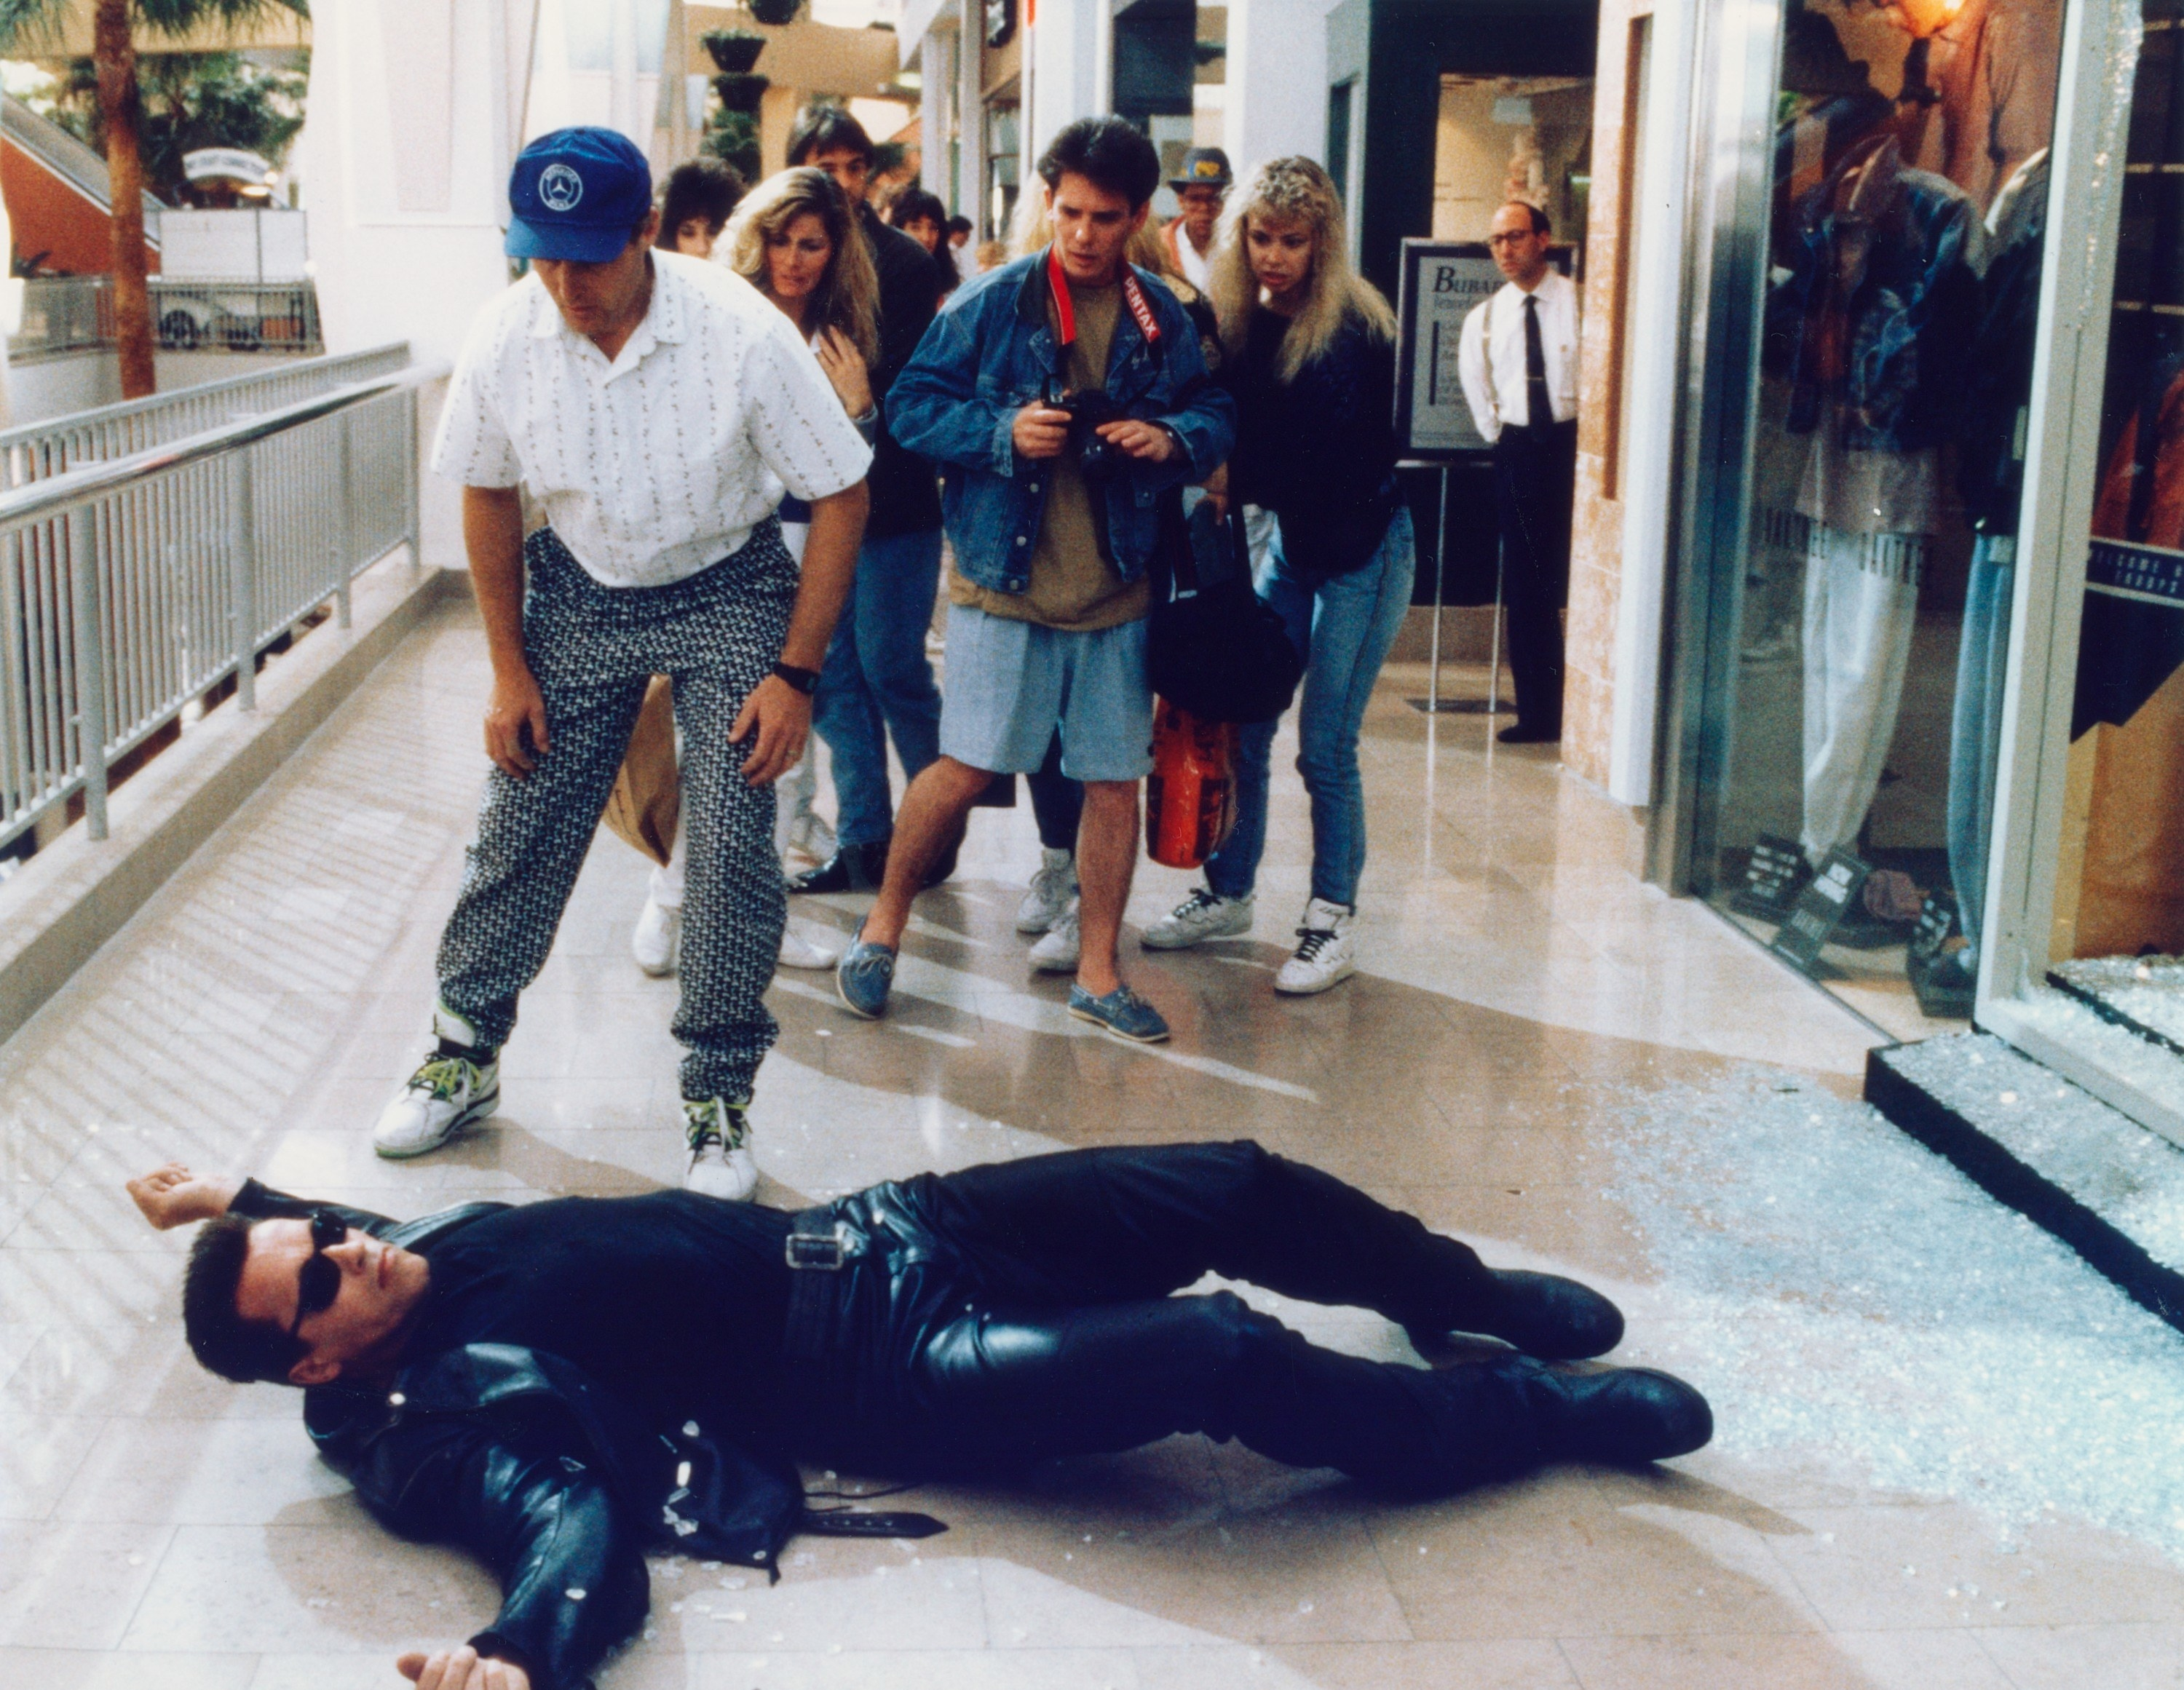 the terminator on the floor at a mall